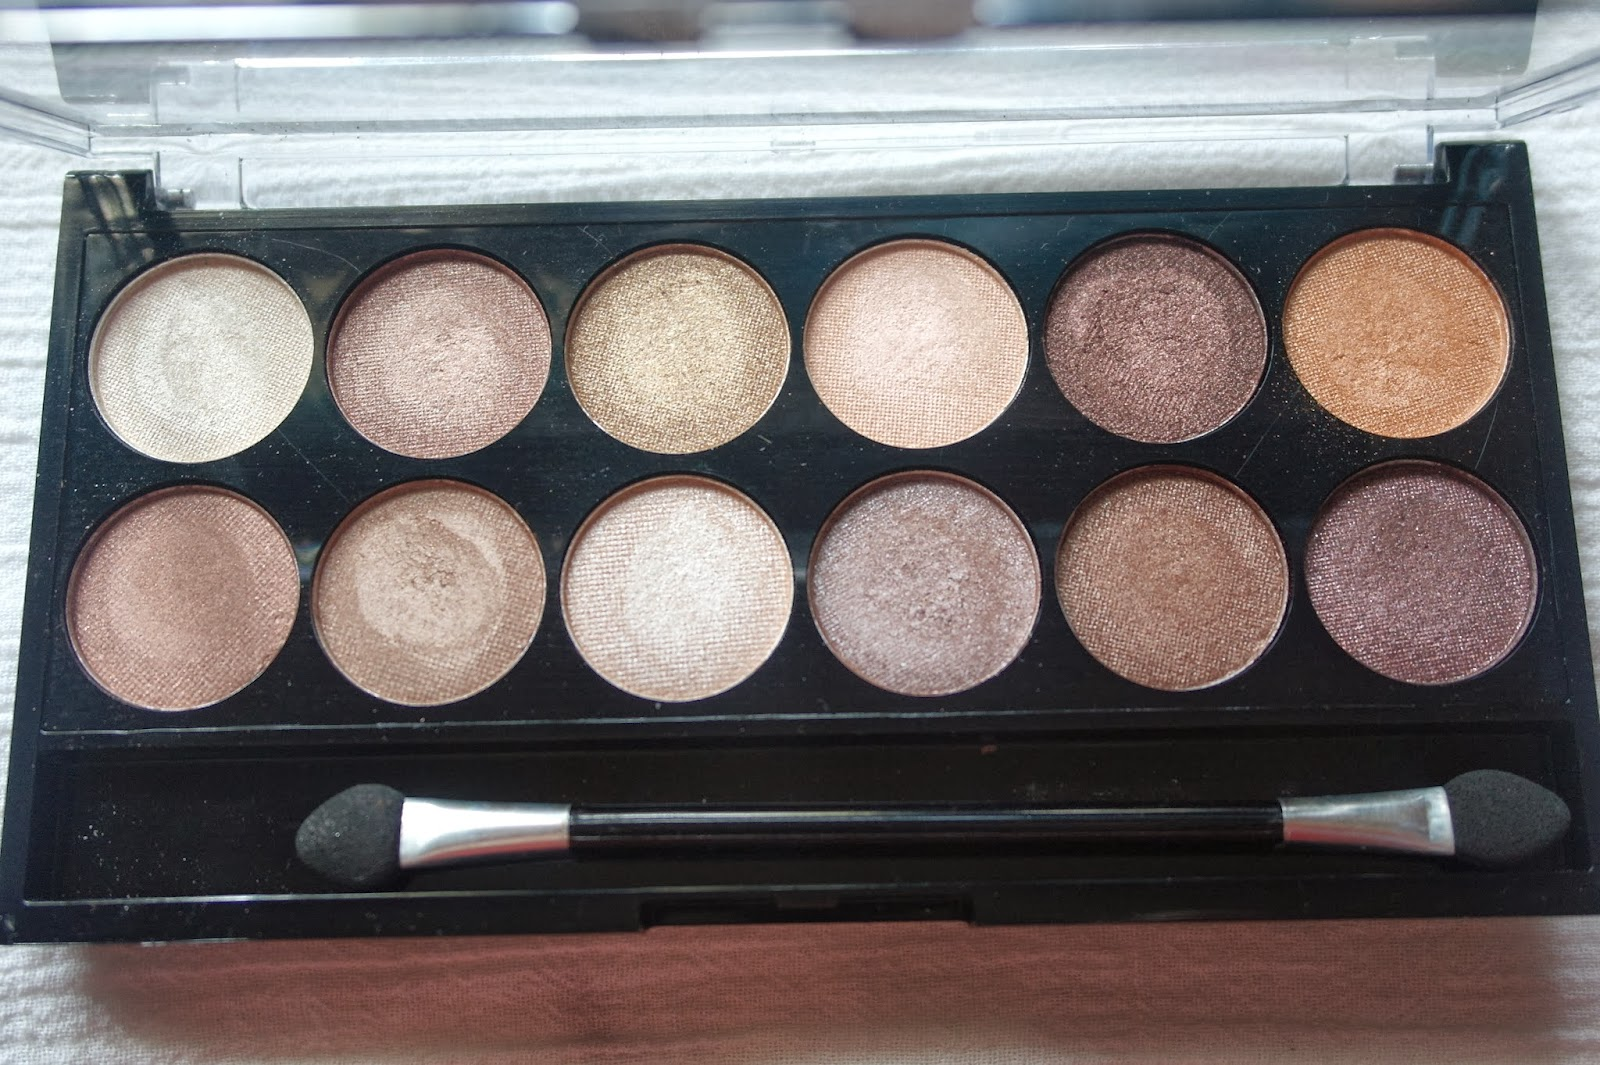 MUA Heaven & earth Eyeshadow Palette Review and Swatches- MUA Heaven & Earth swatches under natural light